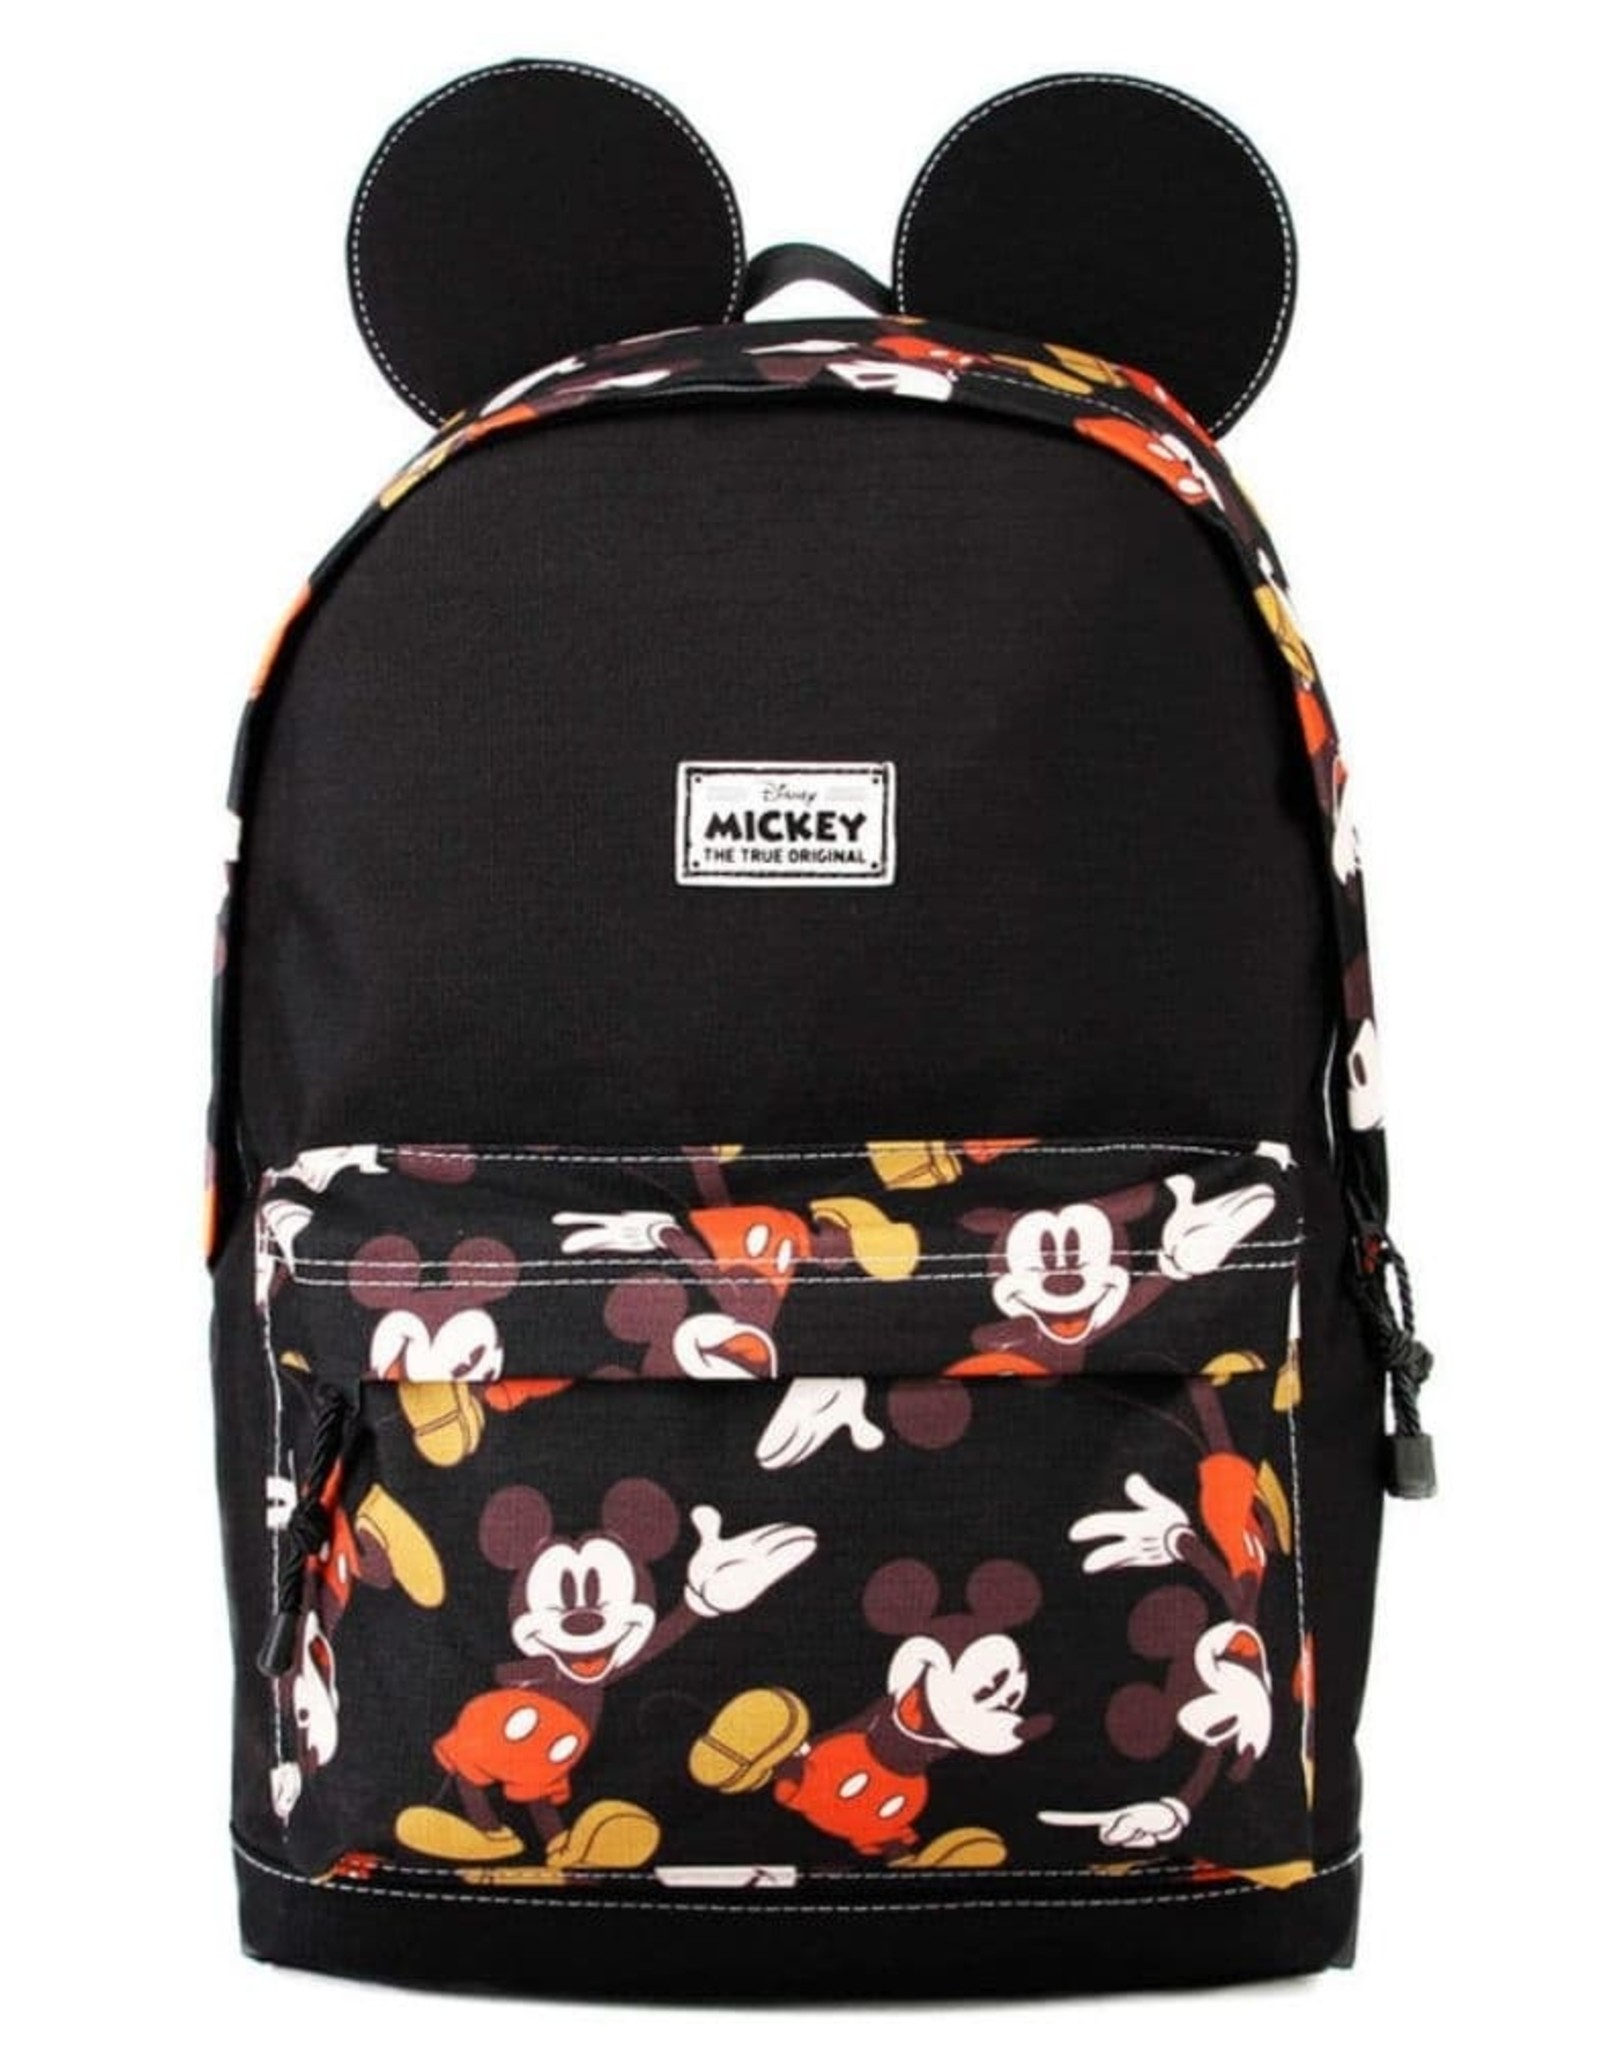 Disney Disney tassen - Disney rugzak Mickey Mouse The True Original